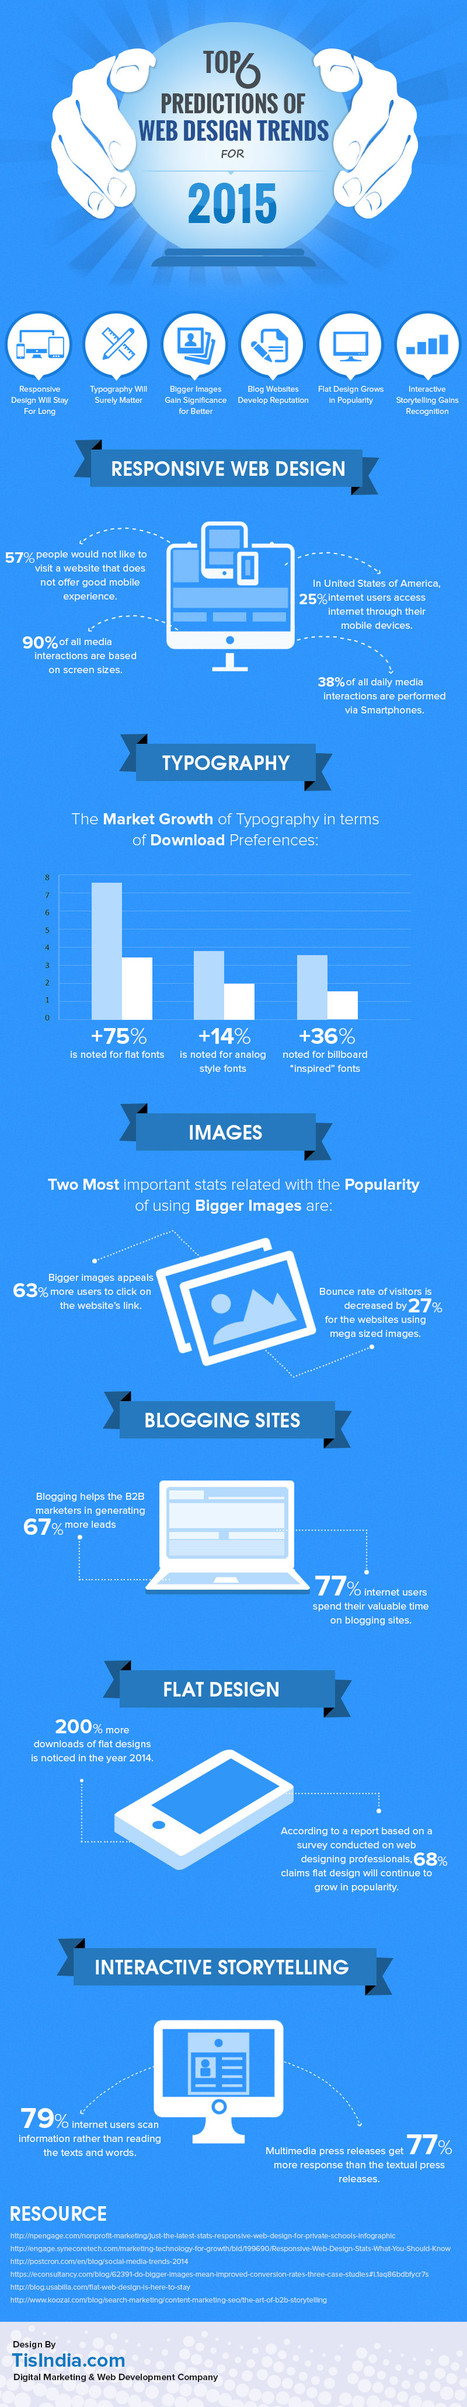 Web Design Trends 2015 [Infographic] | elearning stuff | Scoop.it